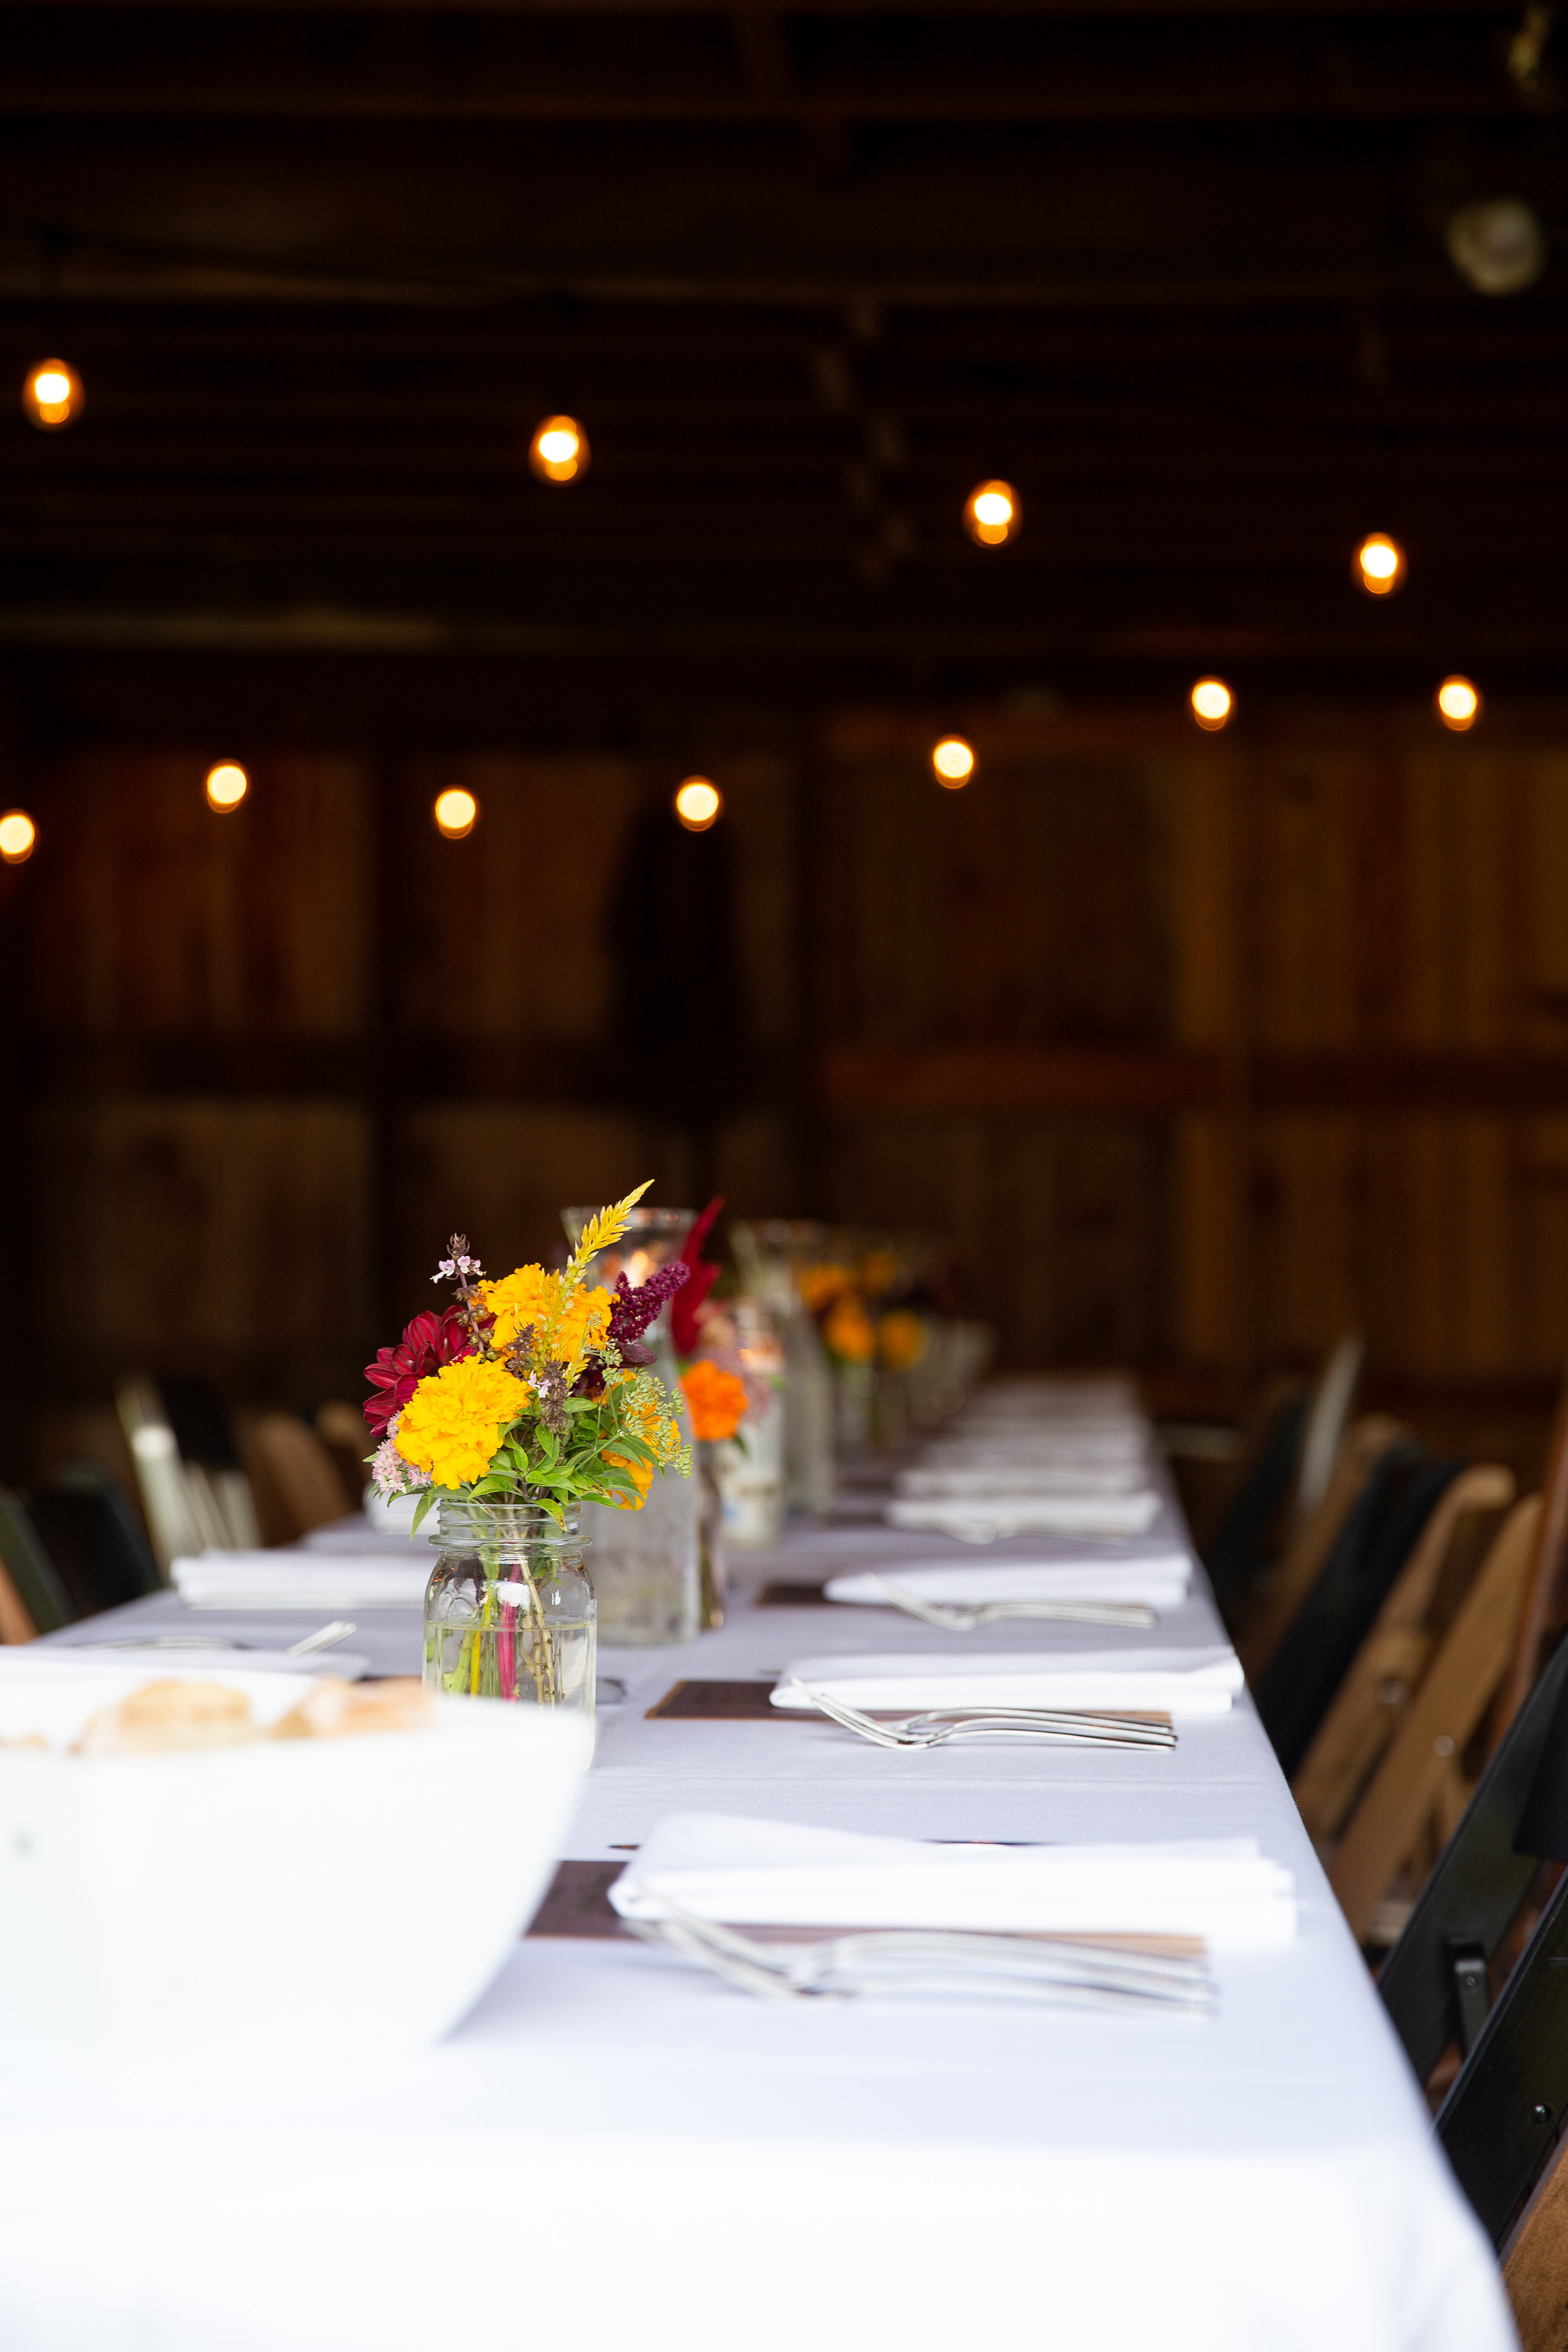 wichita_farm_to_table-7